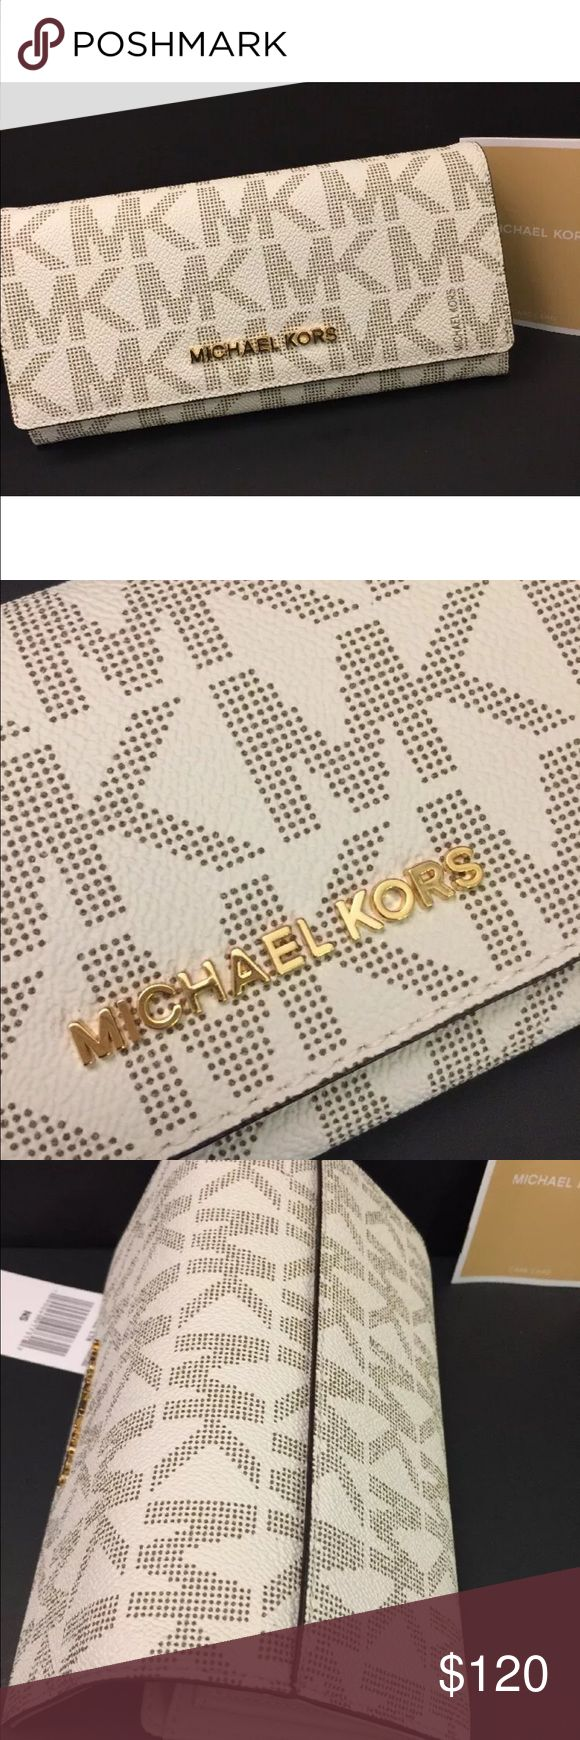 """Michael Kors Carry All Letters Wallet PVC Vanilla 100% Authentic! New With Tag & Care Card  MICHAEL Michael Kors  JET SET TRAVEL Collection Carry All Letters Flap Wallet Style: 35H6GYAE7B Color: Vanilla   Details: MK Signature PVC  Gold-Tone hardware Snap closure; lined Interior zip pocket, 10 card slots, bill compartment Logo plaque on front Measures;  7.75""""L x 1.75""""W x 3.75""""H MICHAEL Michael Kors Bags Wallets"""